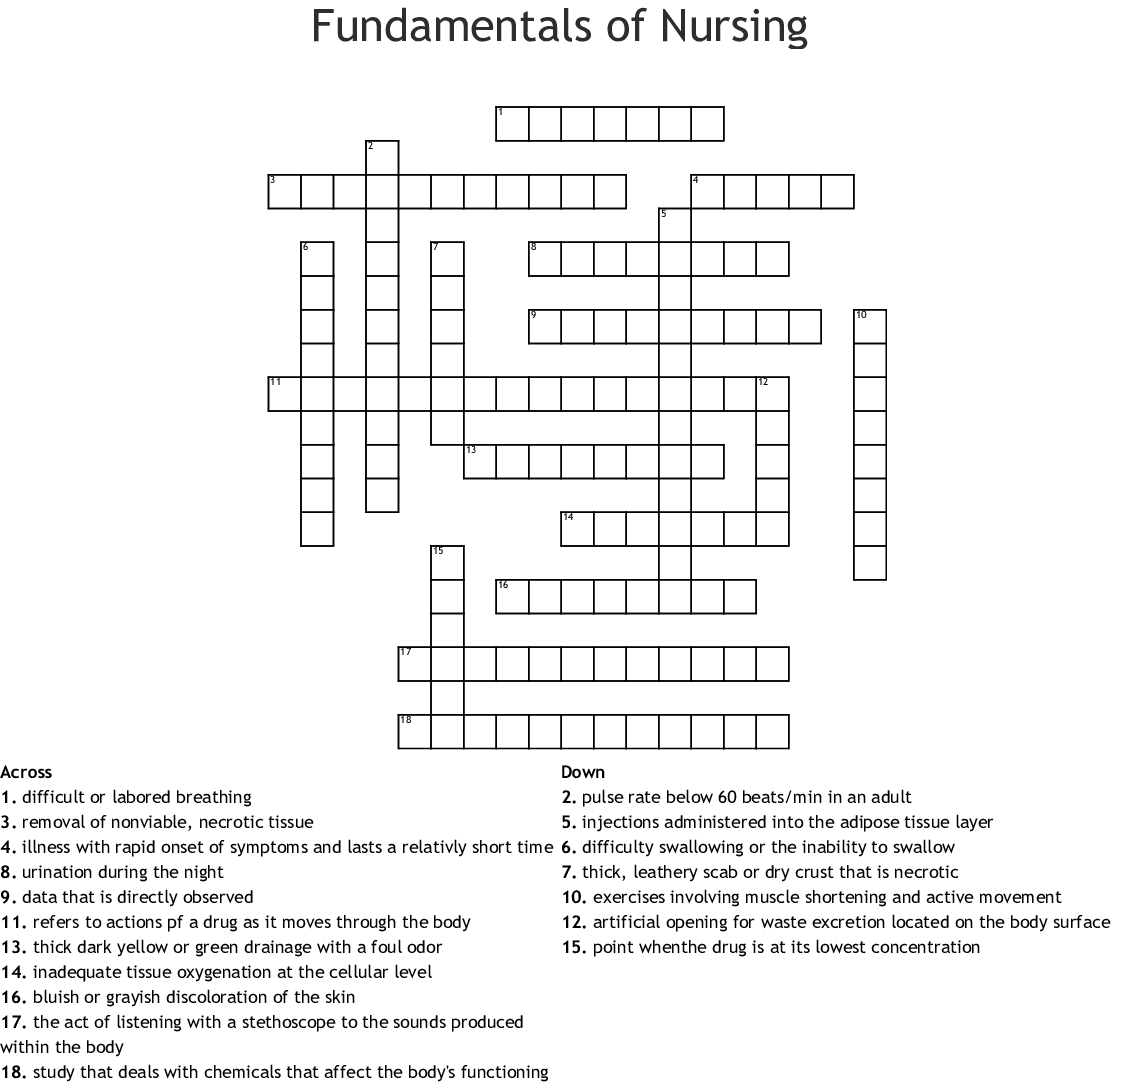 Fundamentals Of Nursing Crossword - Wordmint - Nursing Crossword Puzzles Printable